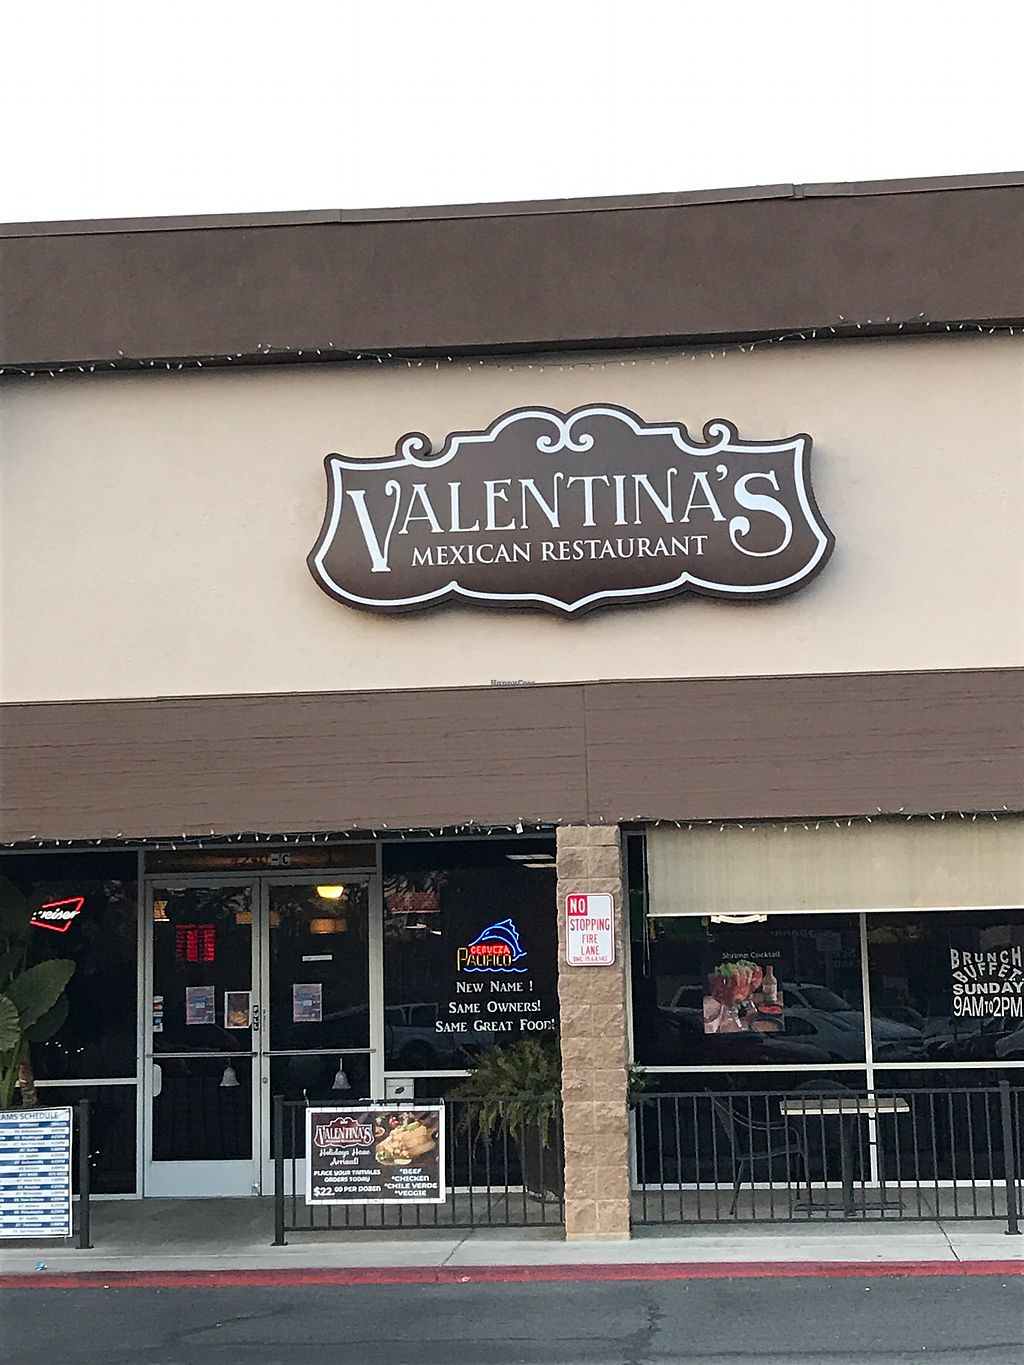 "Photo of Valentina's Mexican Grill  by <a href=""/members/profile/glassesgirl79"">glassesgirl79</a> <br/>Entrance to Valentina's Mexican Restaurant  <br/> December 24, 2017  - <a href='/contact/abuse/image/107854/338606'>Report</a>"